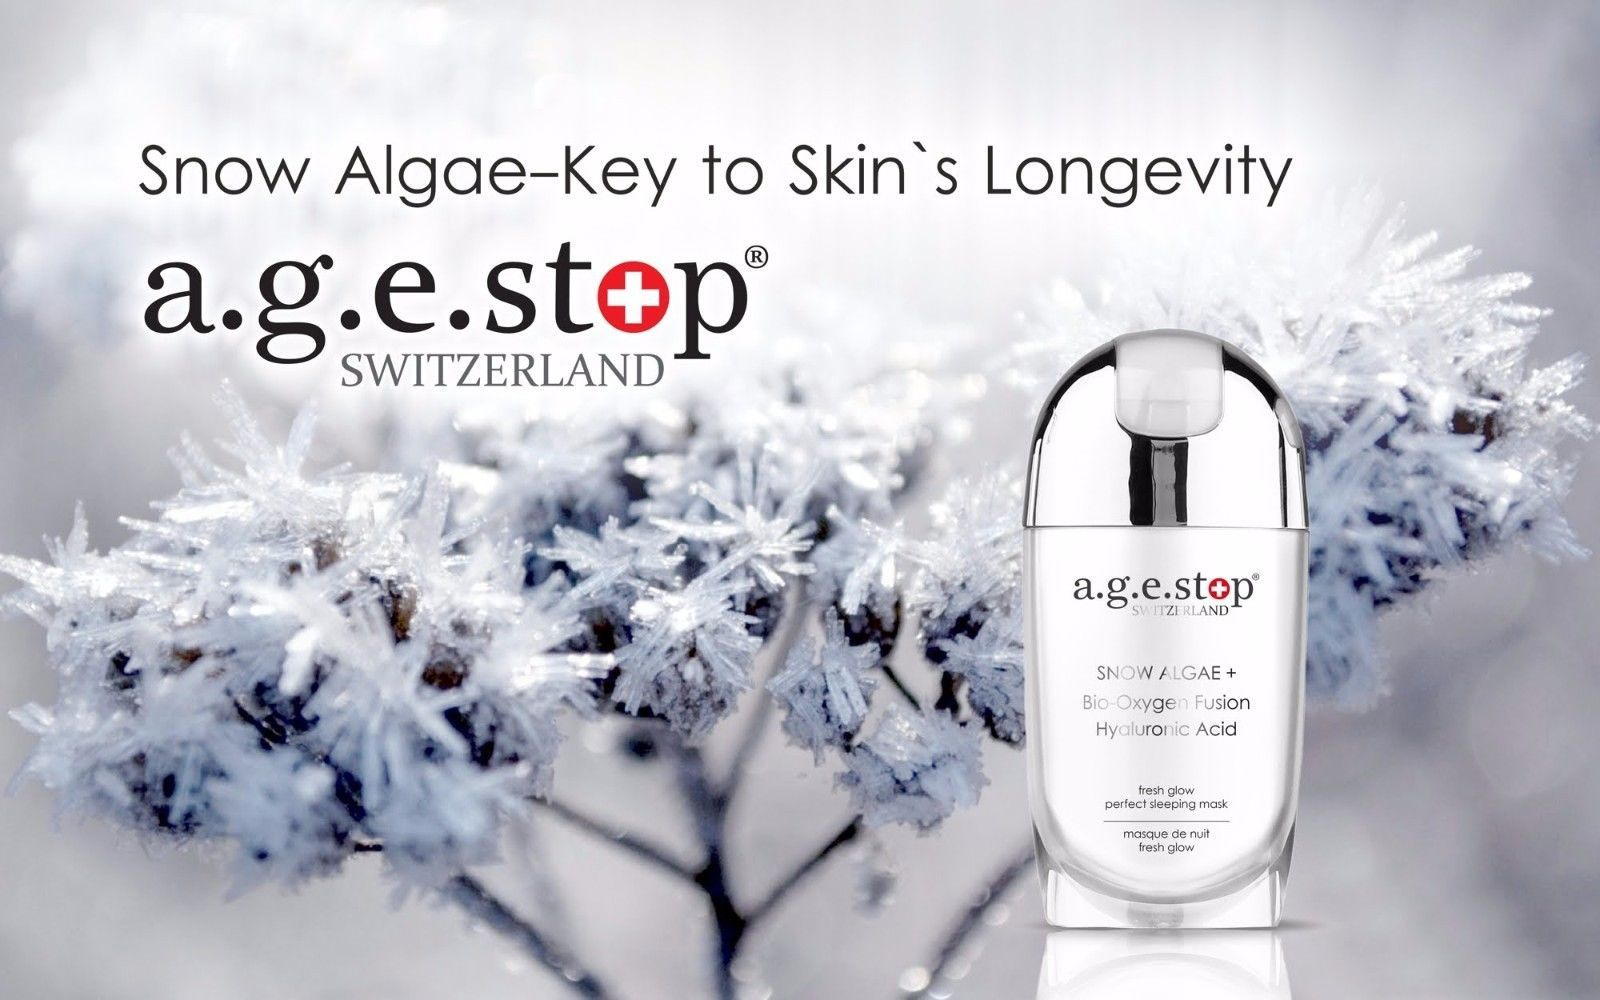 Details about Age Stop Switzerland Winterproof Your Skin